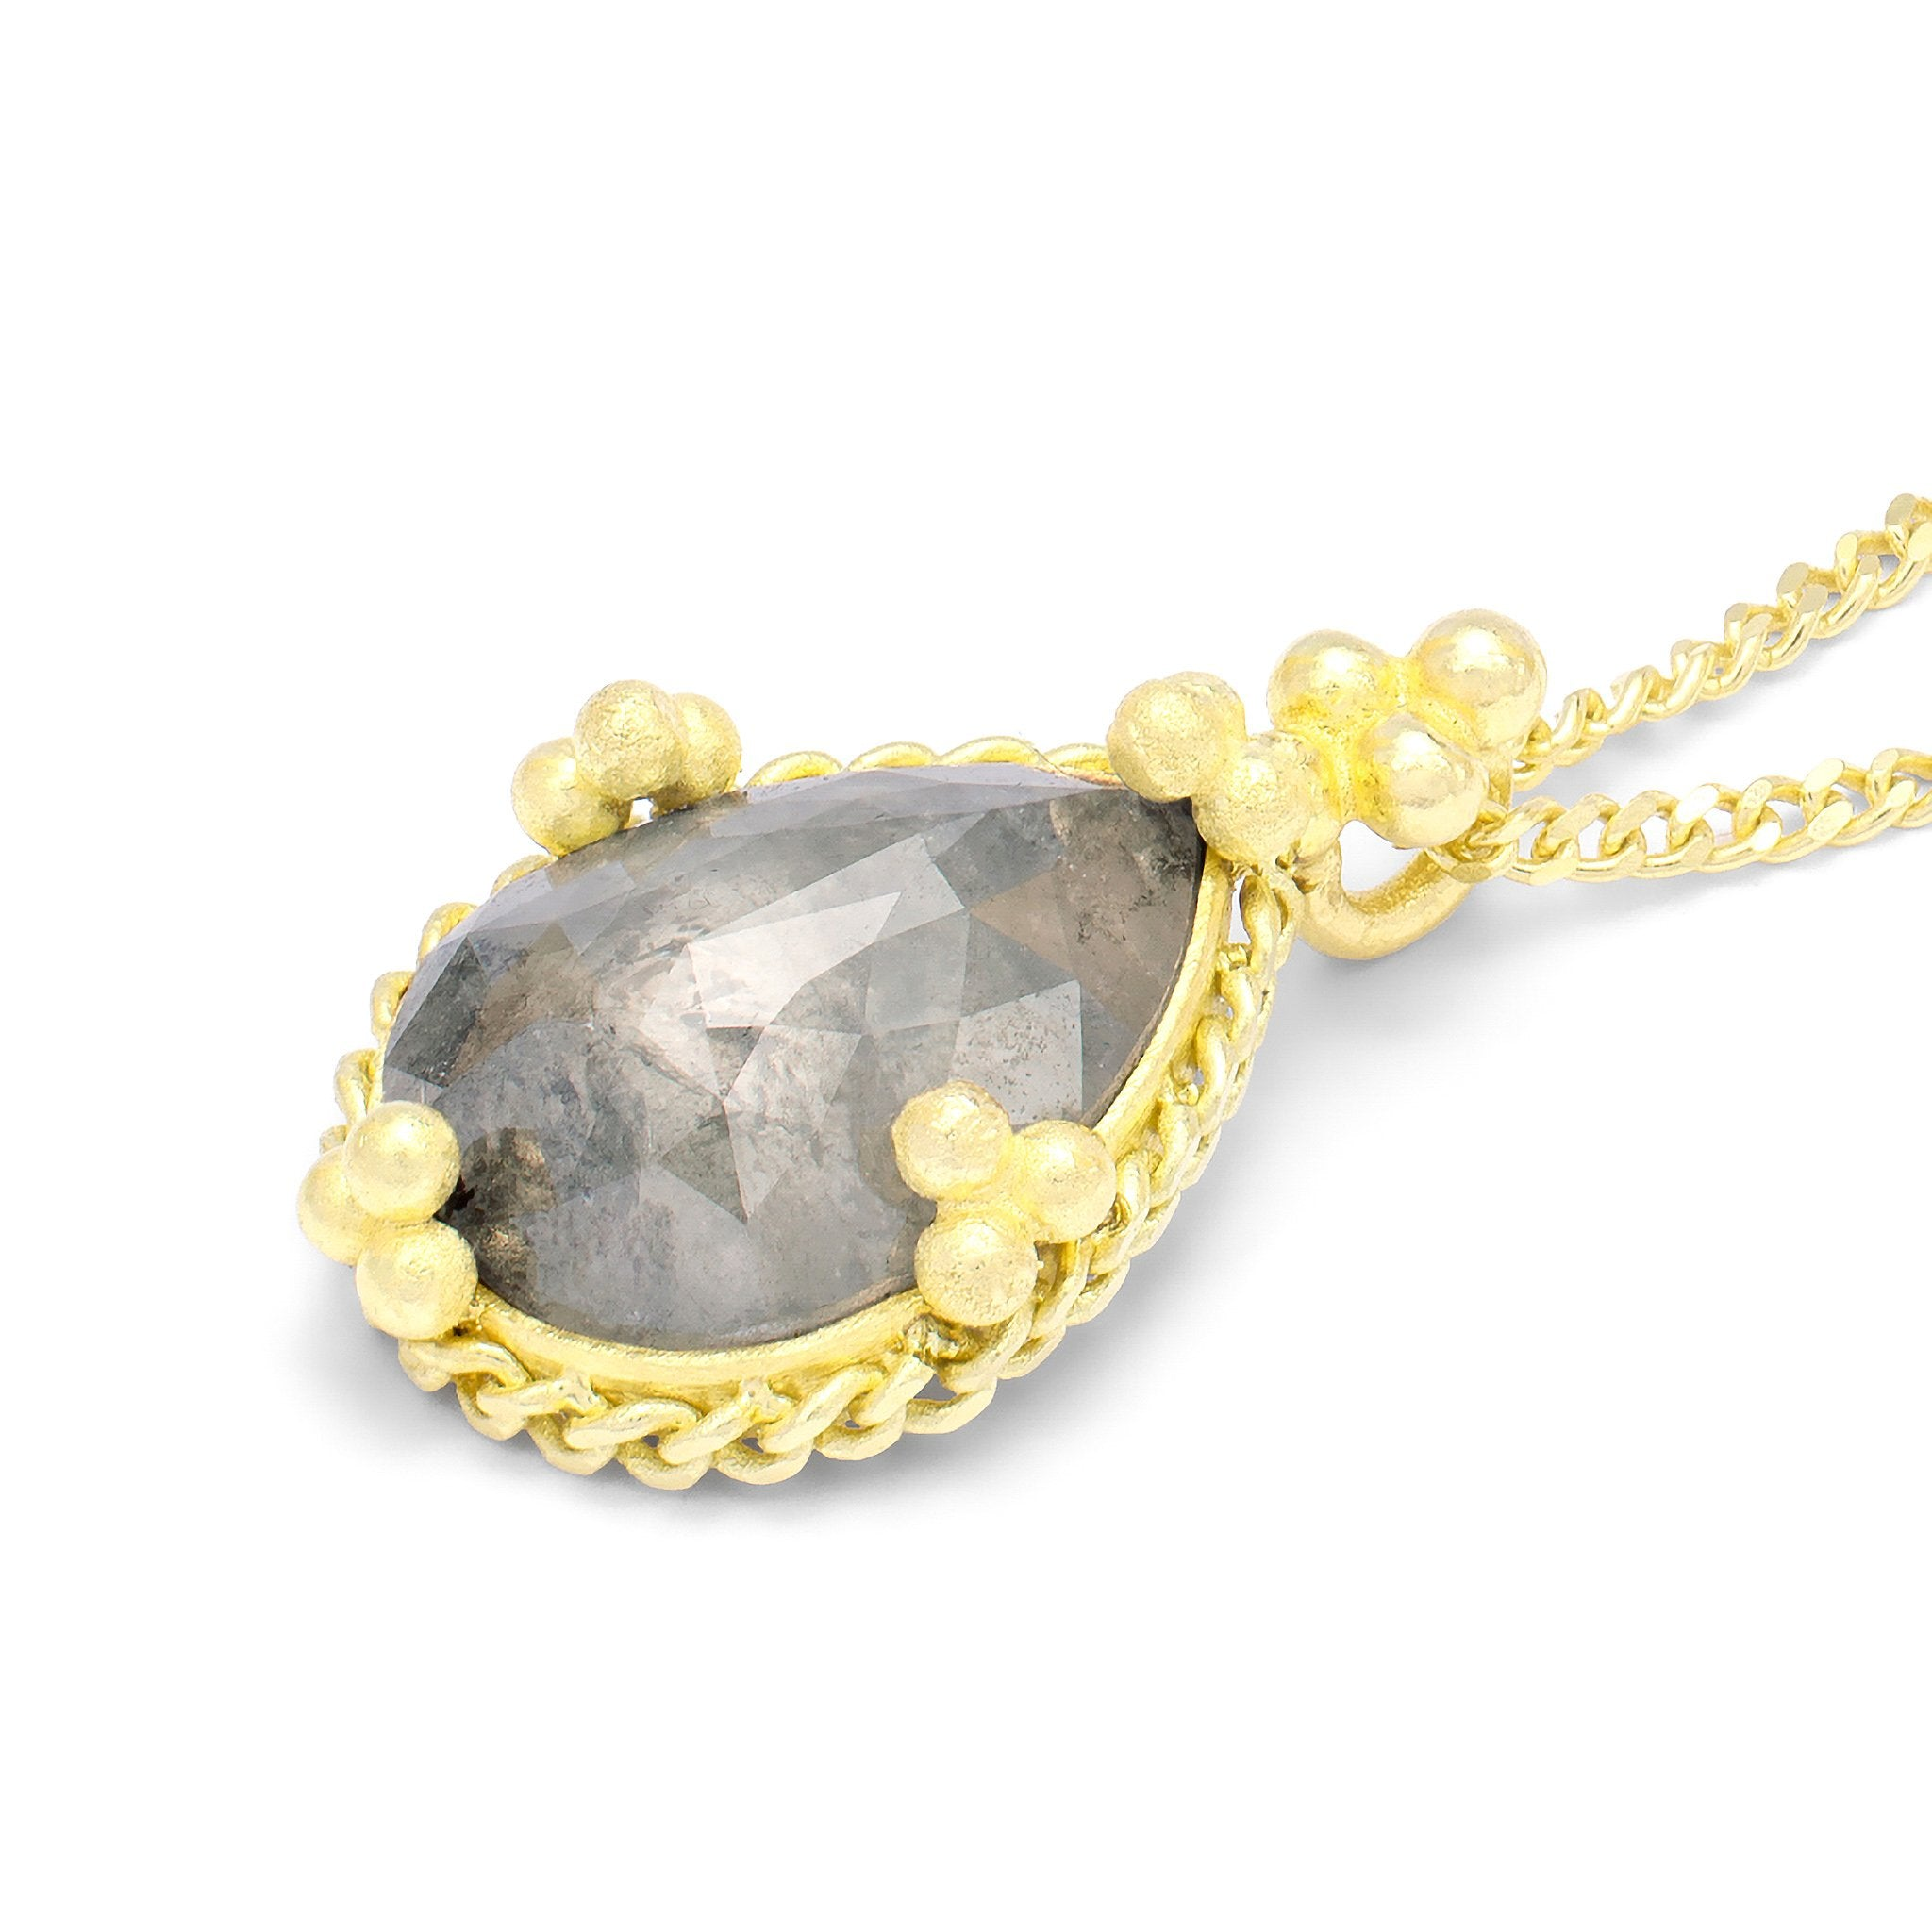 Amali-Silky Grey Diamond Necklace